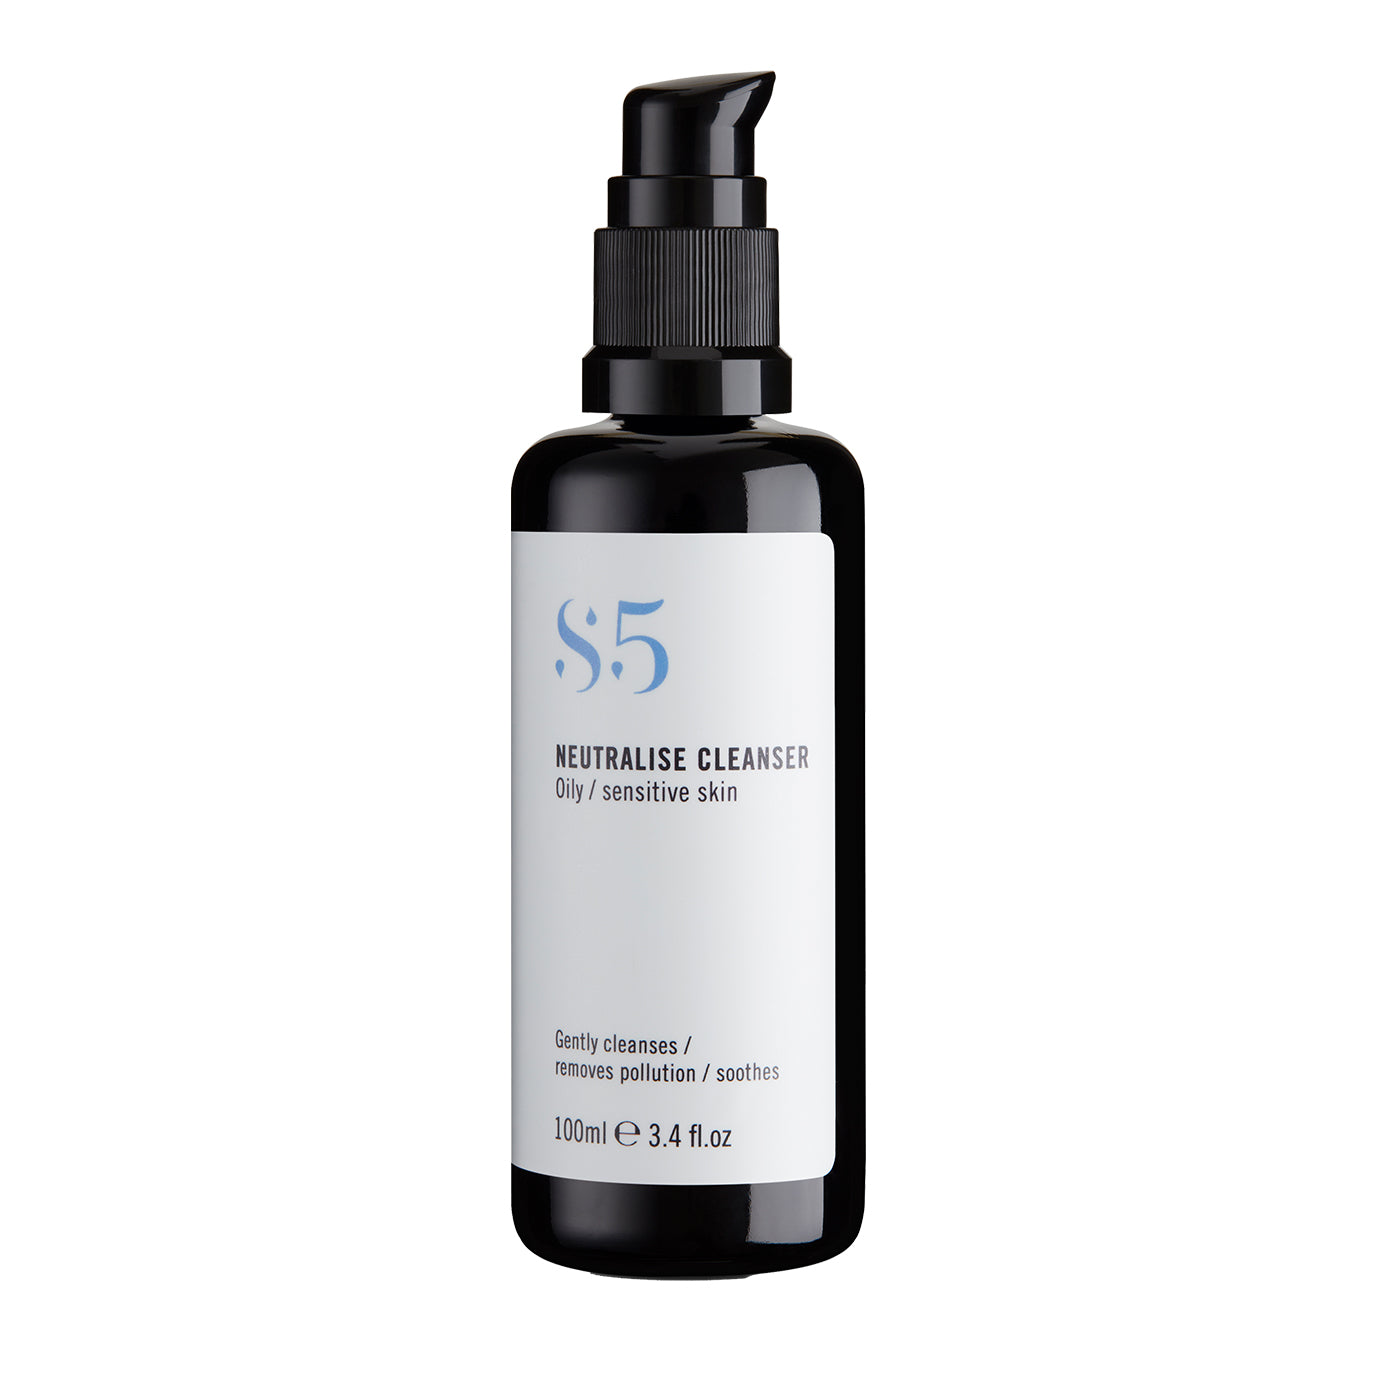 S5 Neutralise Cleanser